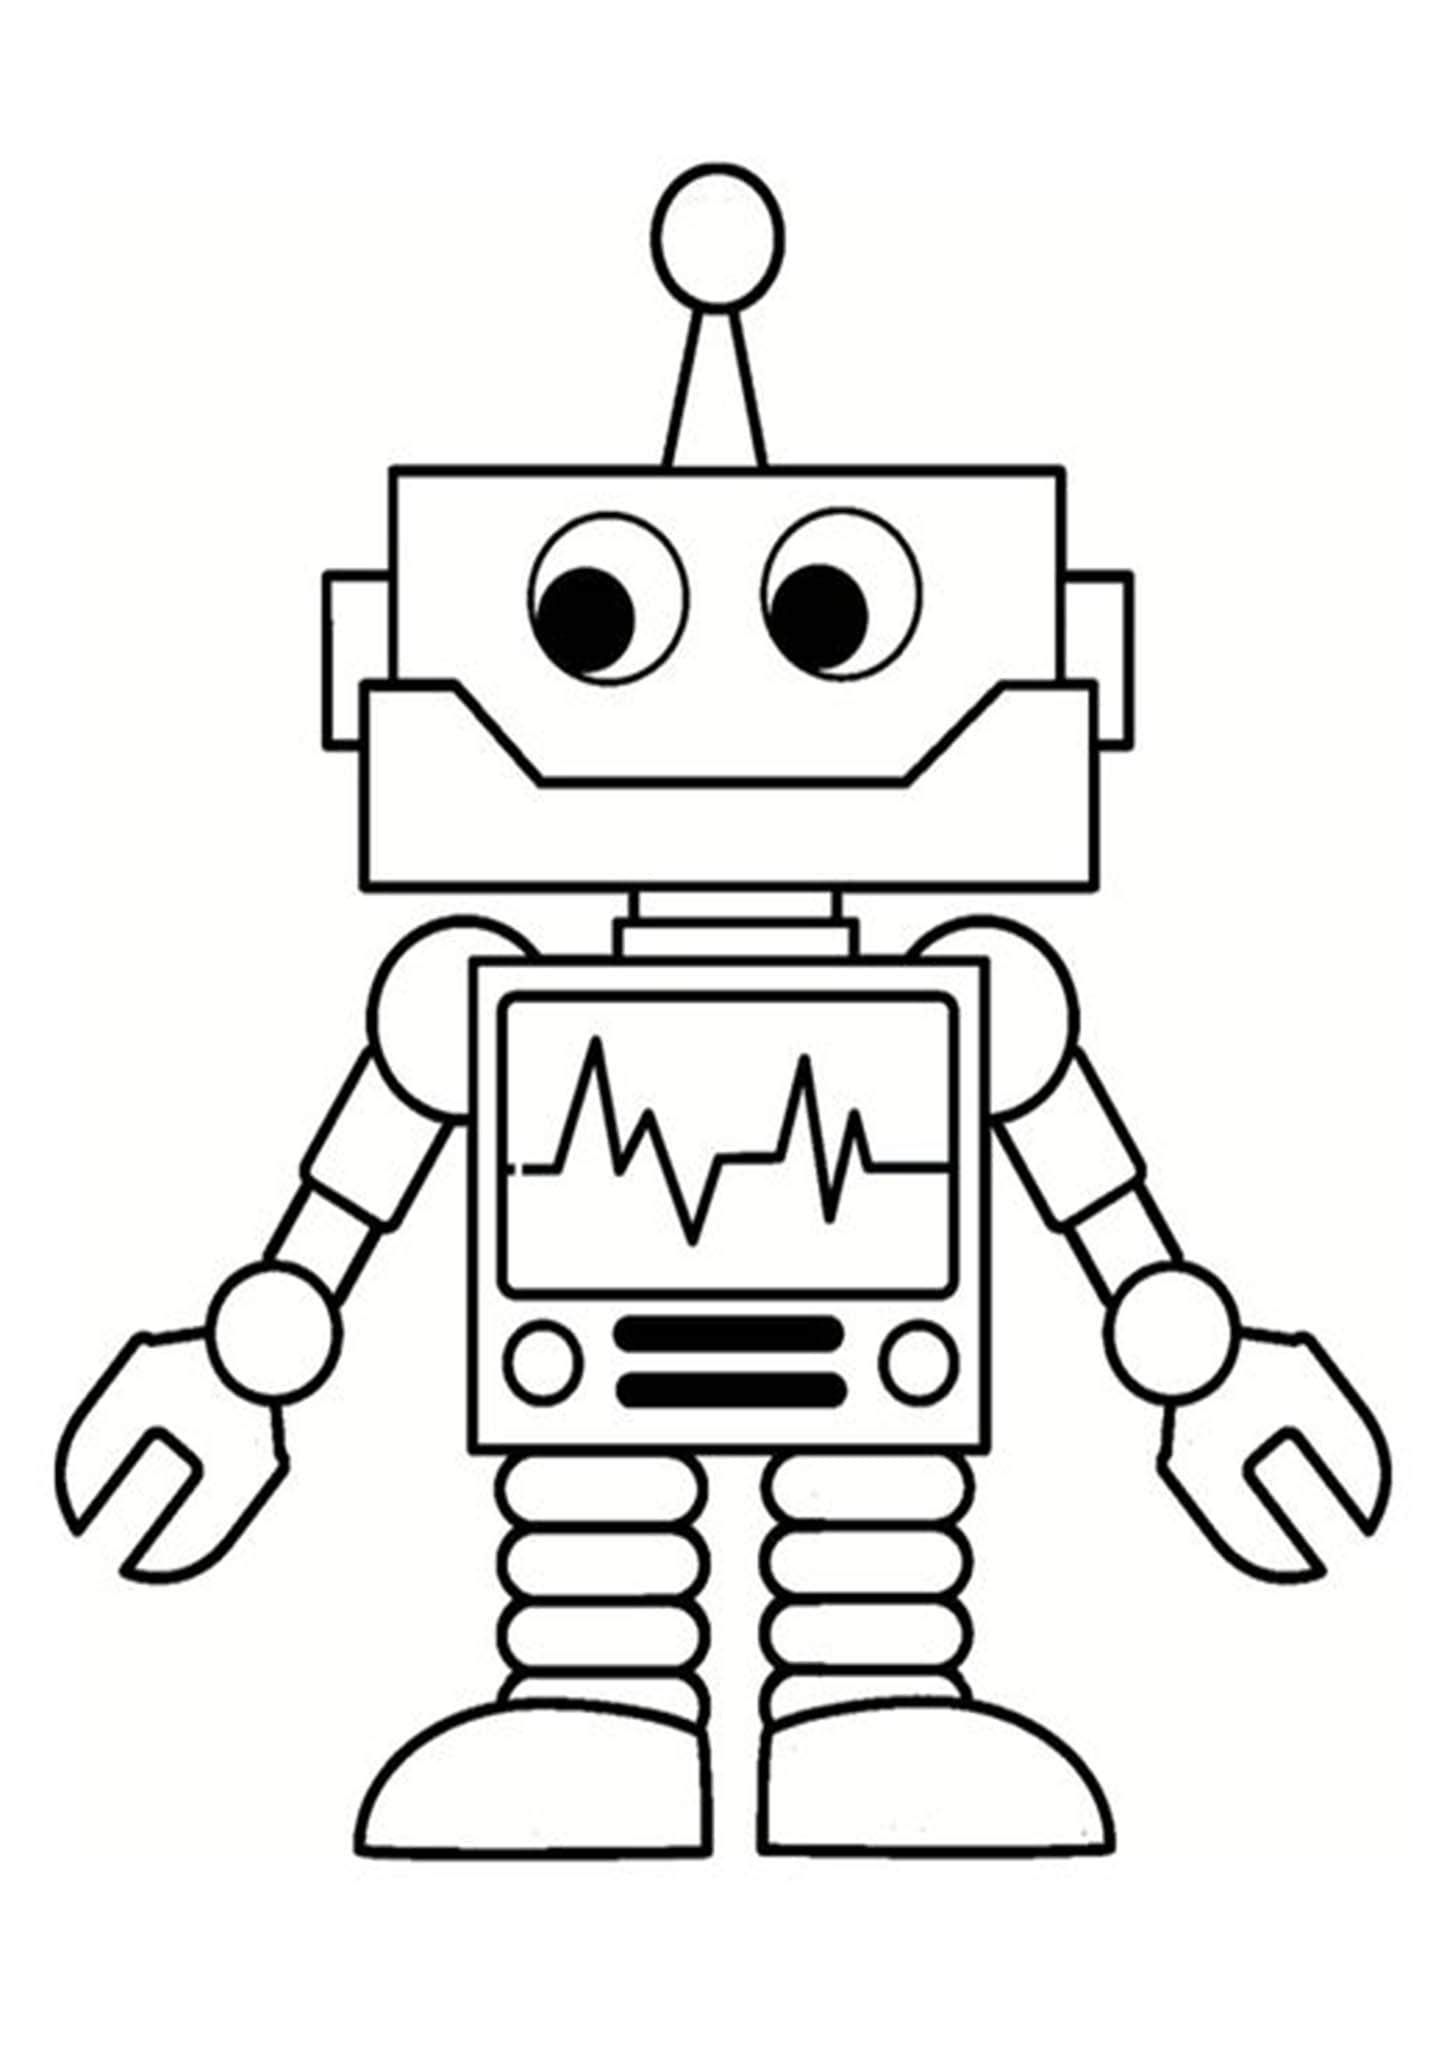 Free Easy To Print Robot Coloring Pages Robots Drawing Robot Art Robots For Kids